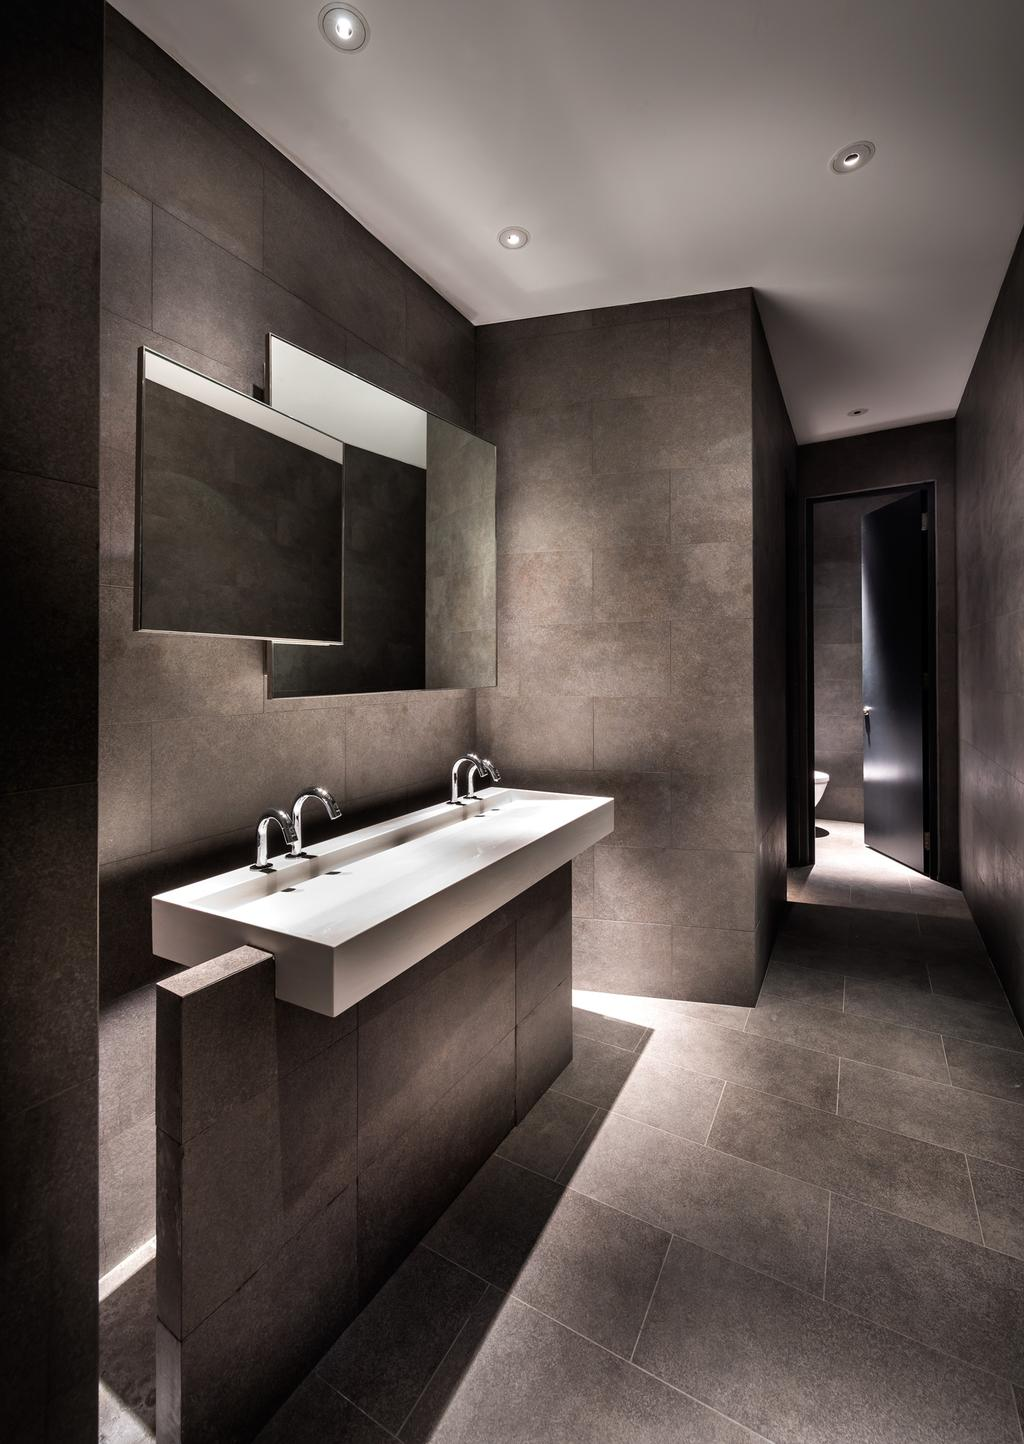 UOL Fractal Gallery, Commercial, Architect, Ministry of Design, Contemporary, Bathroom, Recessed Lighting, Recessed Lights, Grey Walls, Gray Walls, Grey Flooring, Gray Flooring, Wall Mounted Mirror, Mirror, White Basin, Corridor, Sink, Indoors, Interior Design, Room